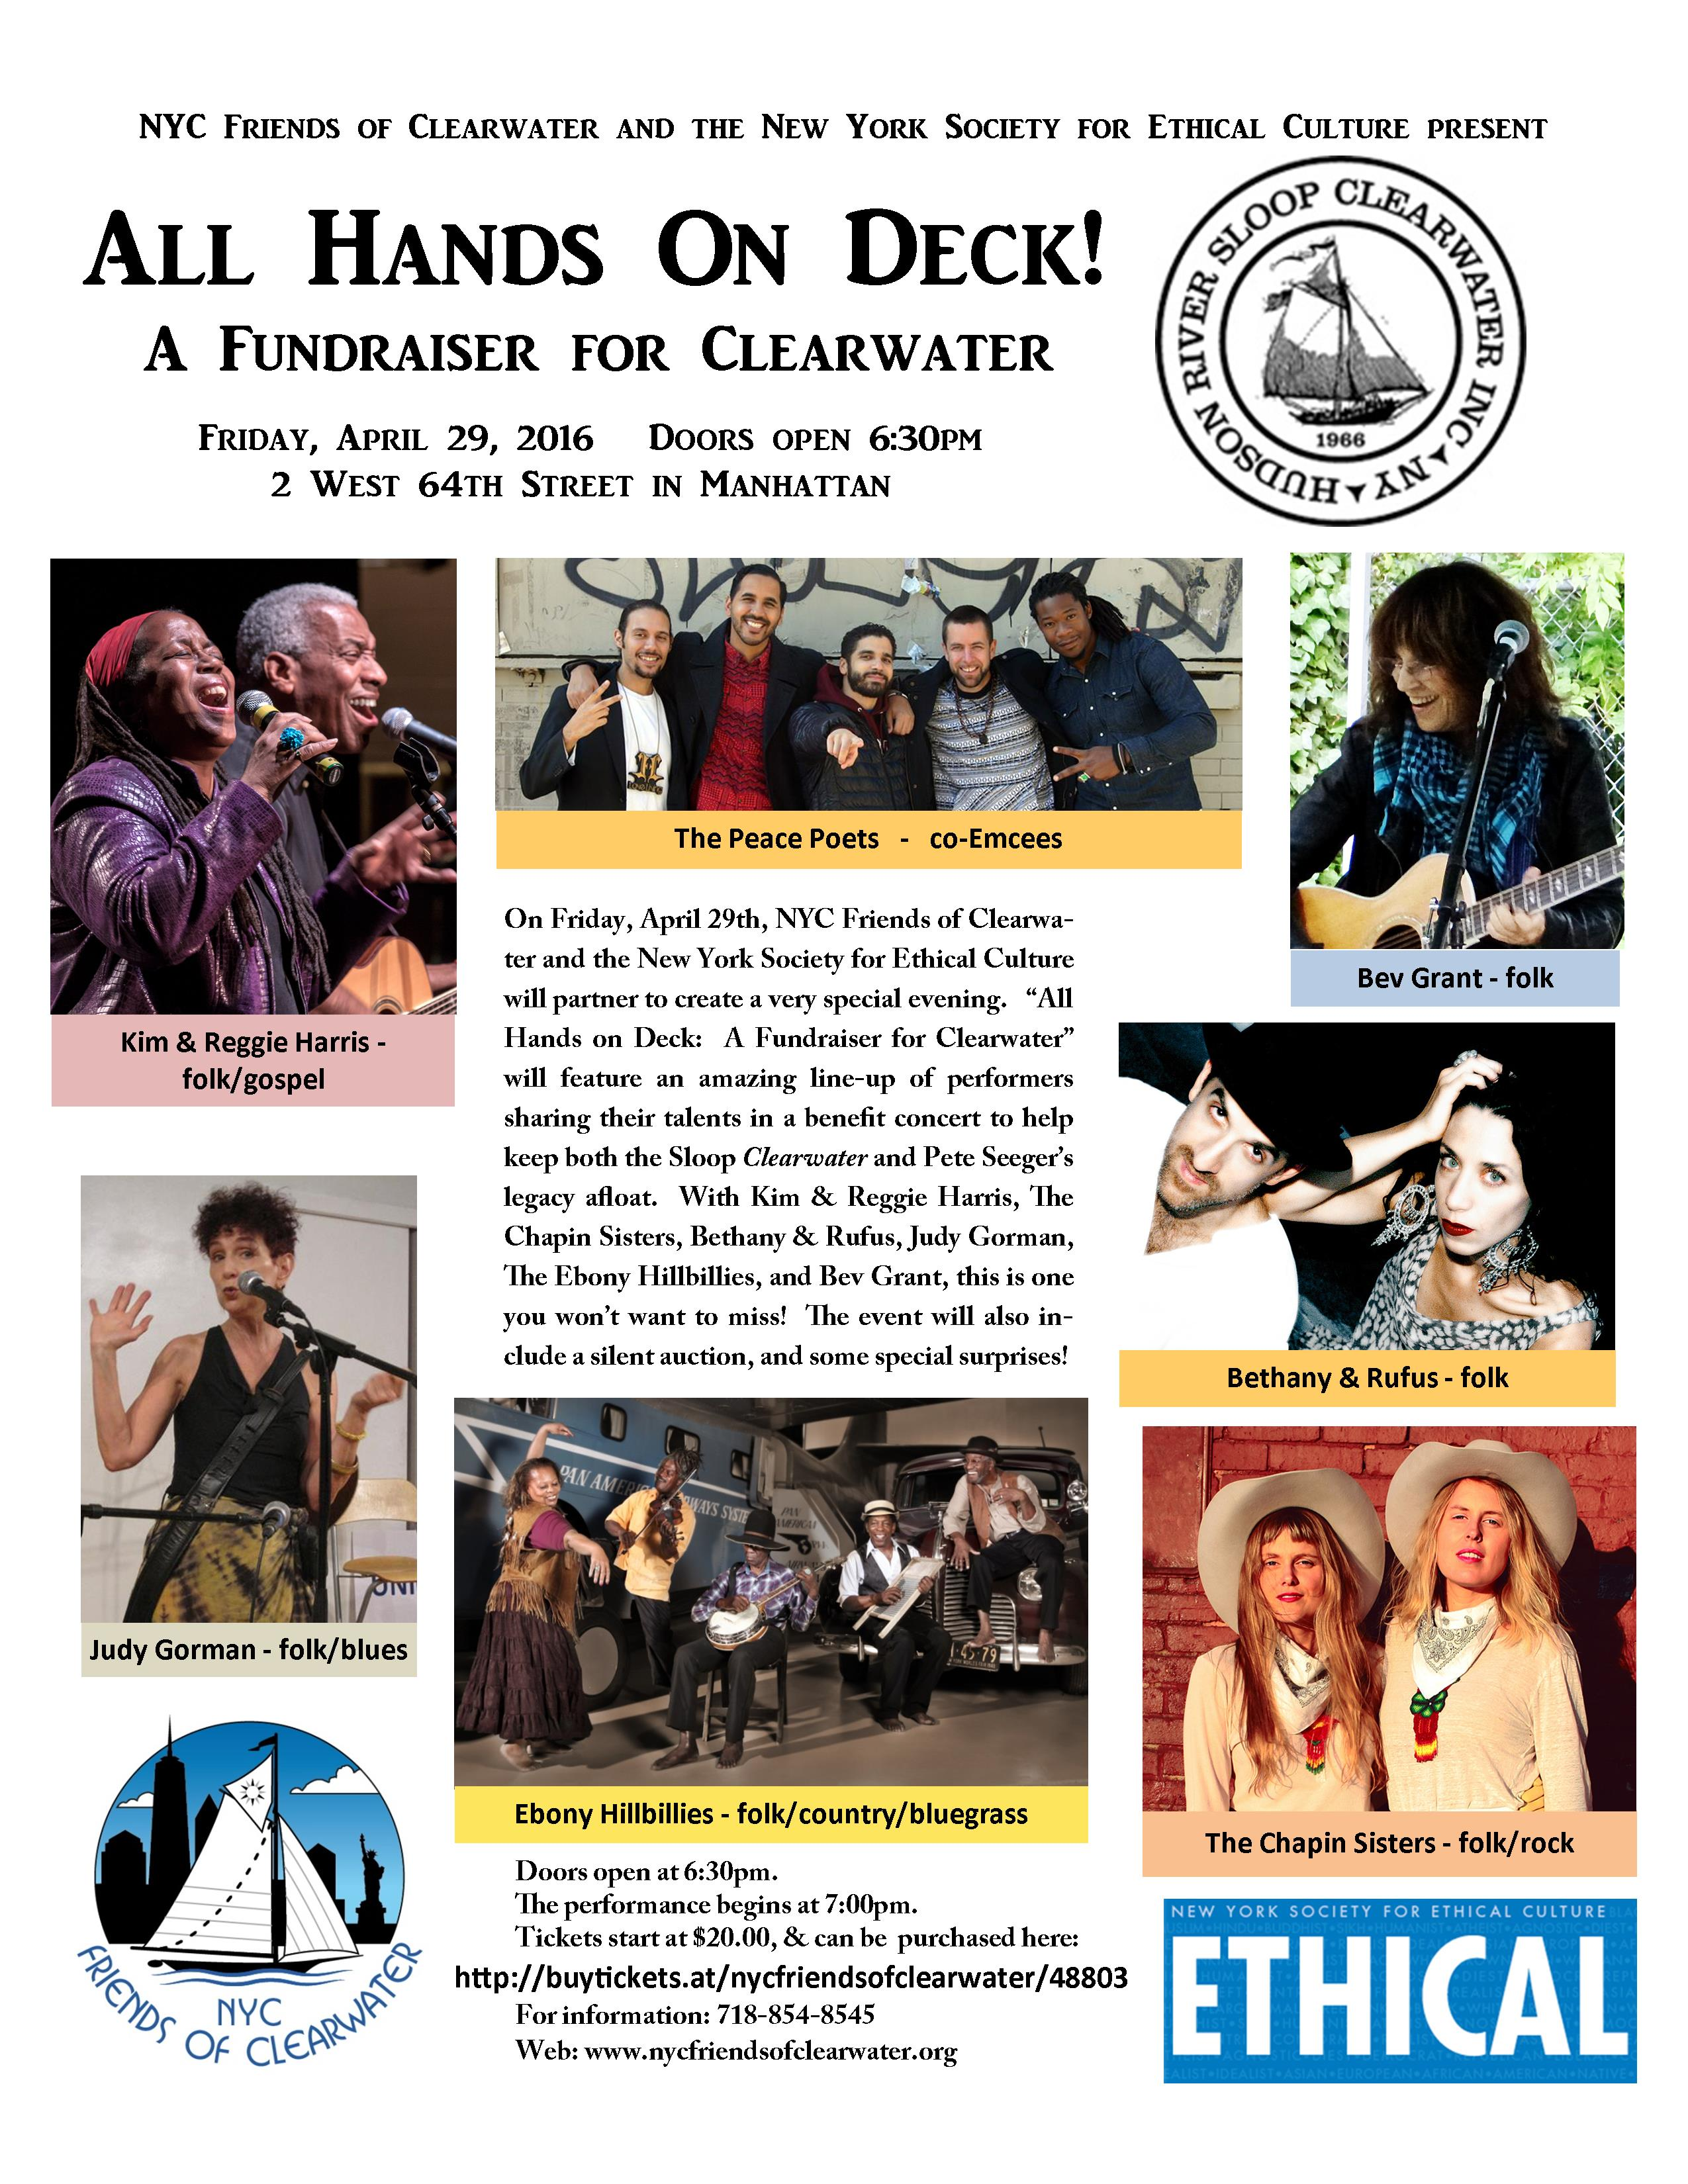 All Hands On Deck - April 29th - A Fundraiser for Clearwater